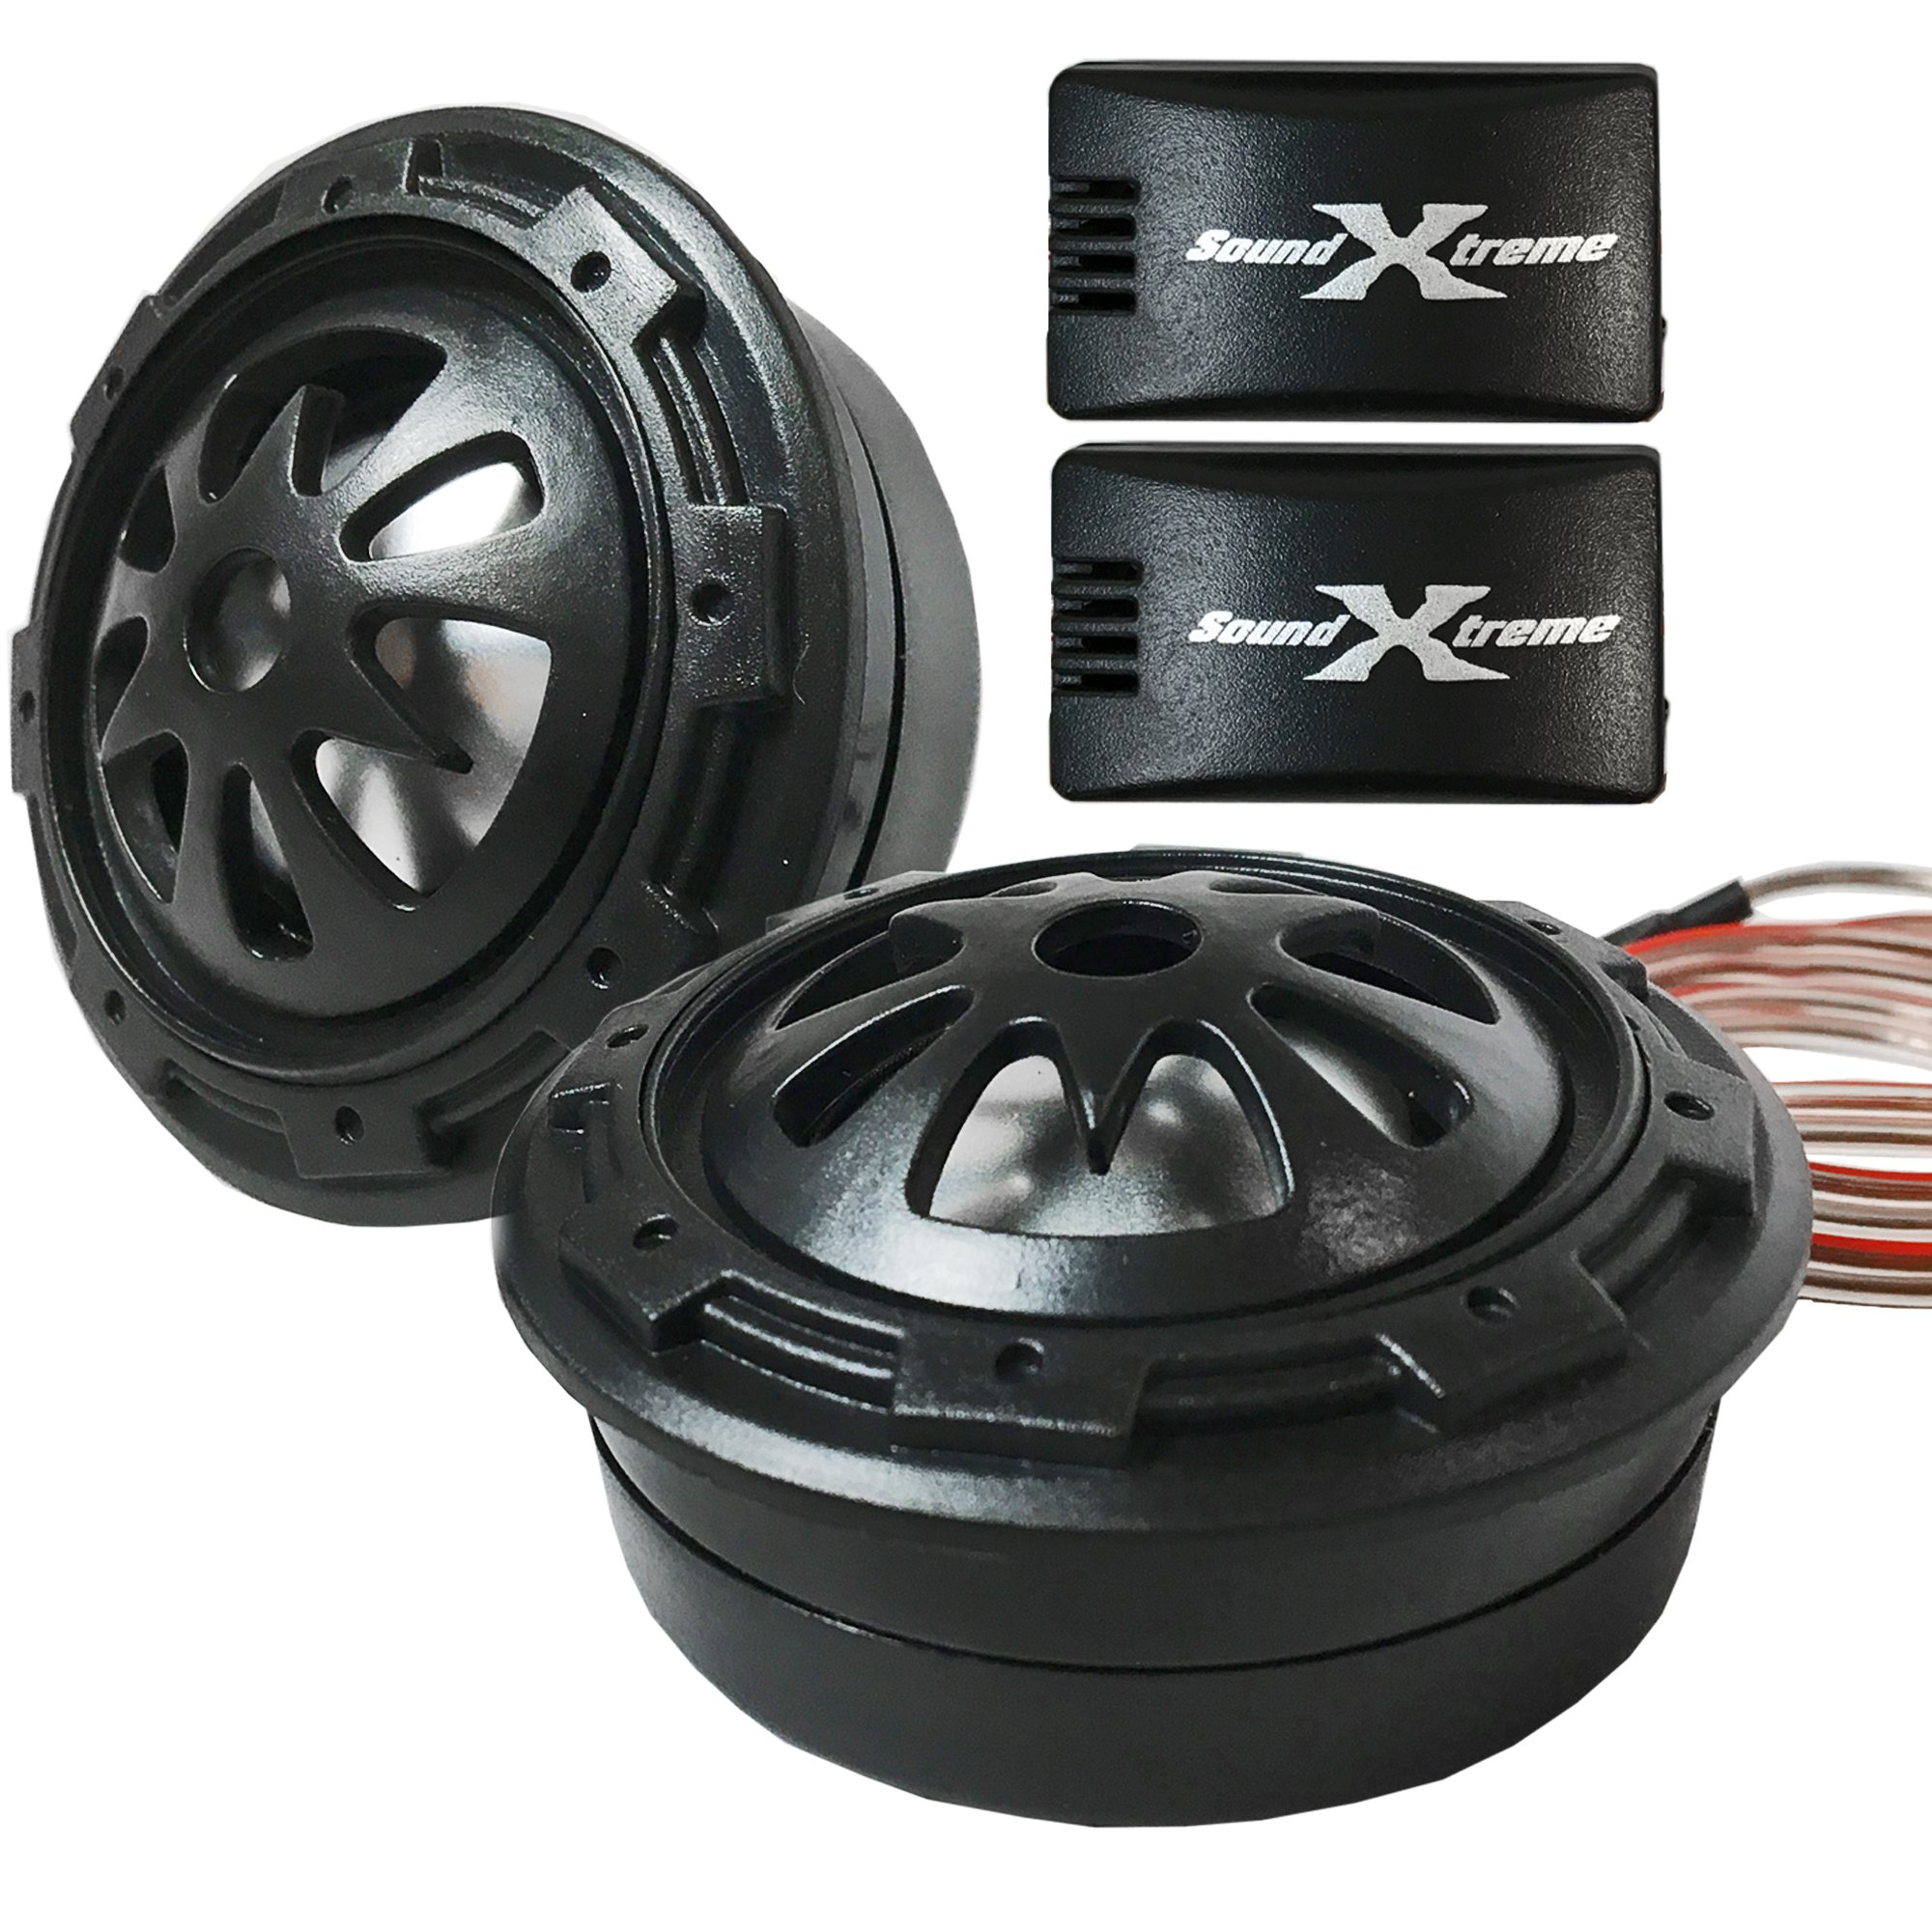 SoundXtreme ST-TW30 LOUD Tweeters 1'' Component System 350W MAX POWER w/ Crossovers